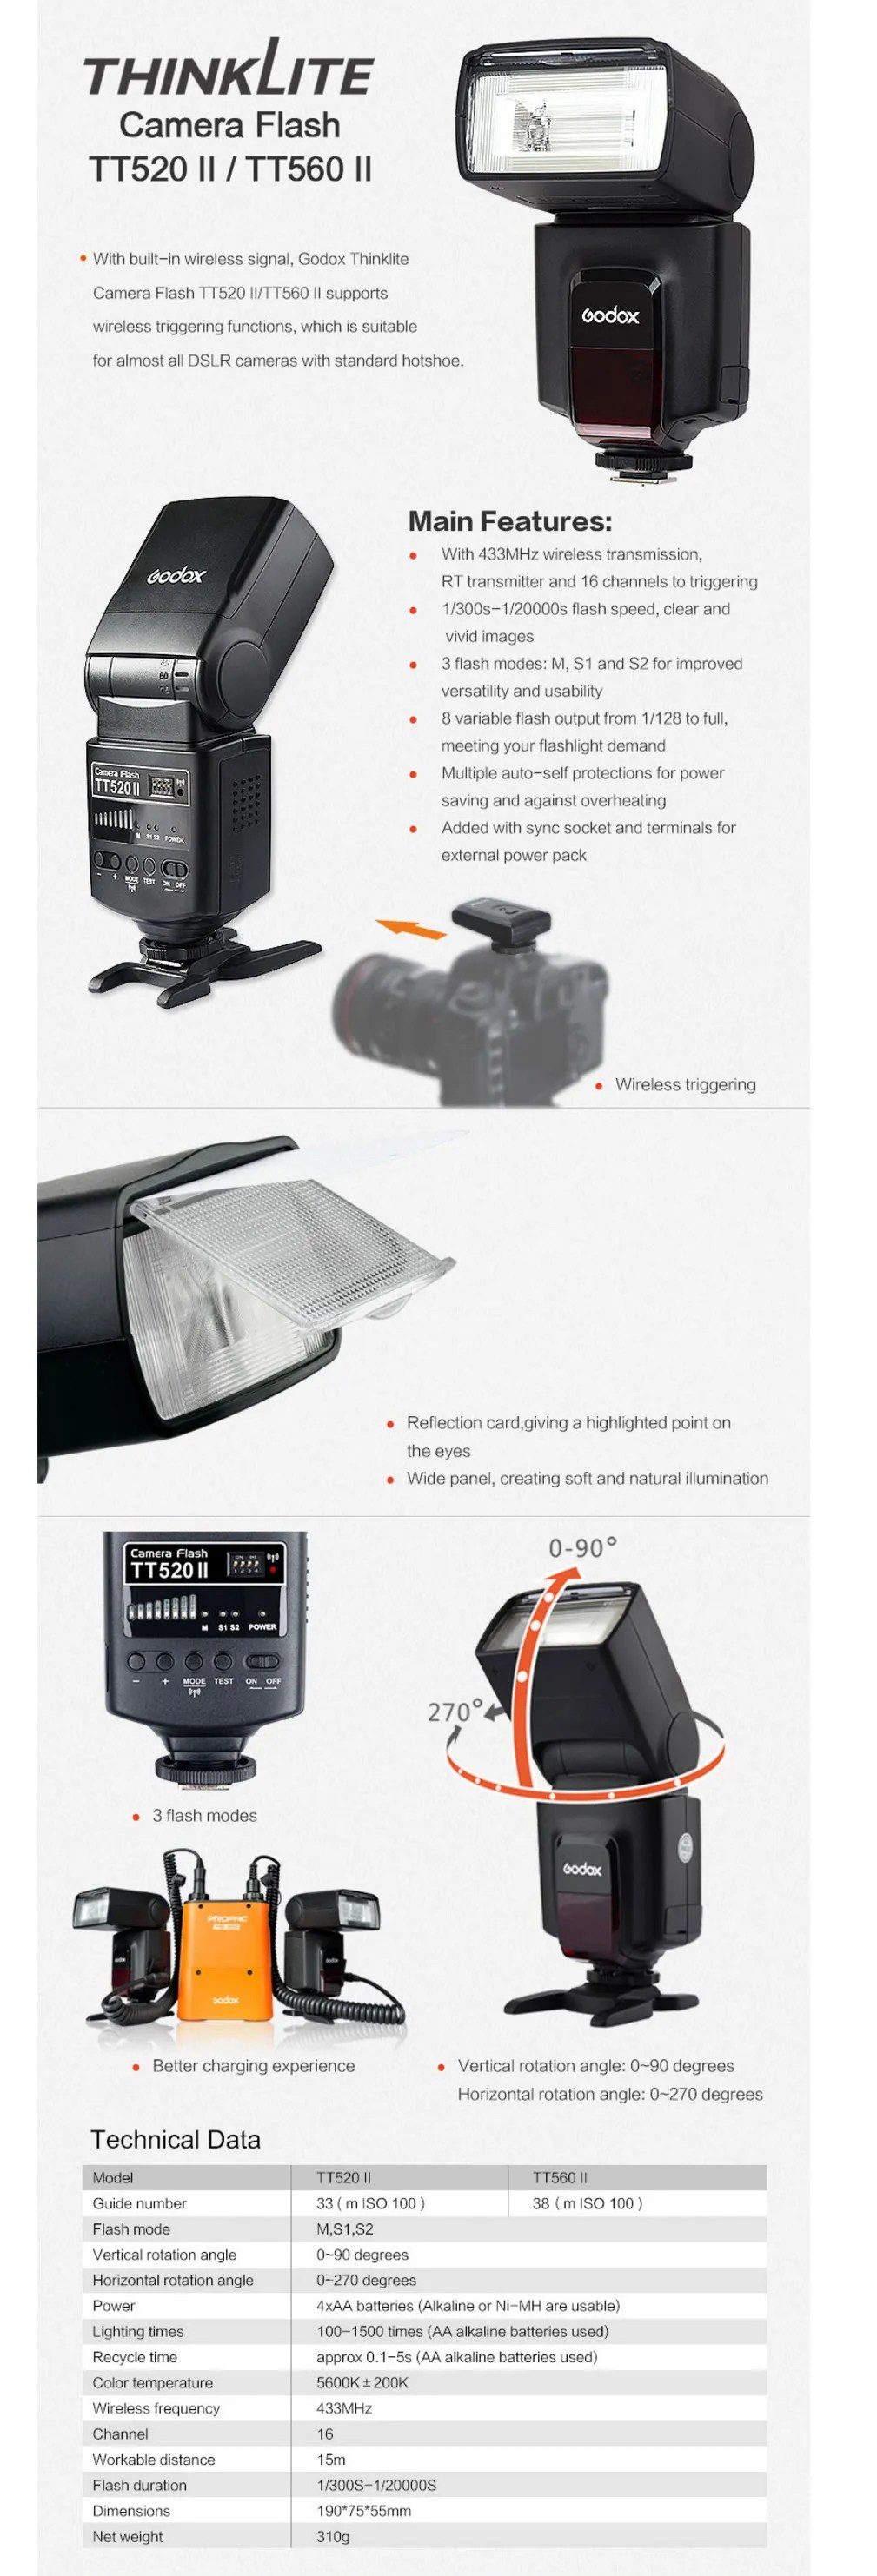 Godox Thinklite TT560II Flash for DSLR Cameras, 38m at ISO